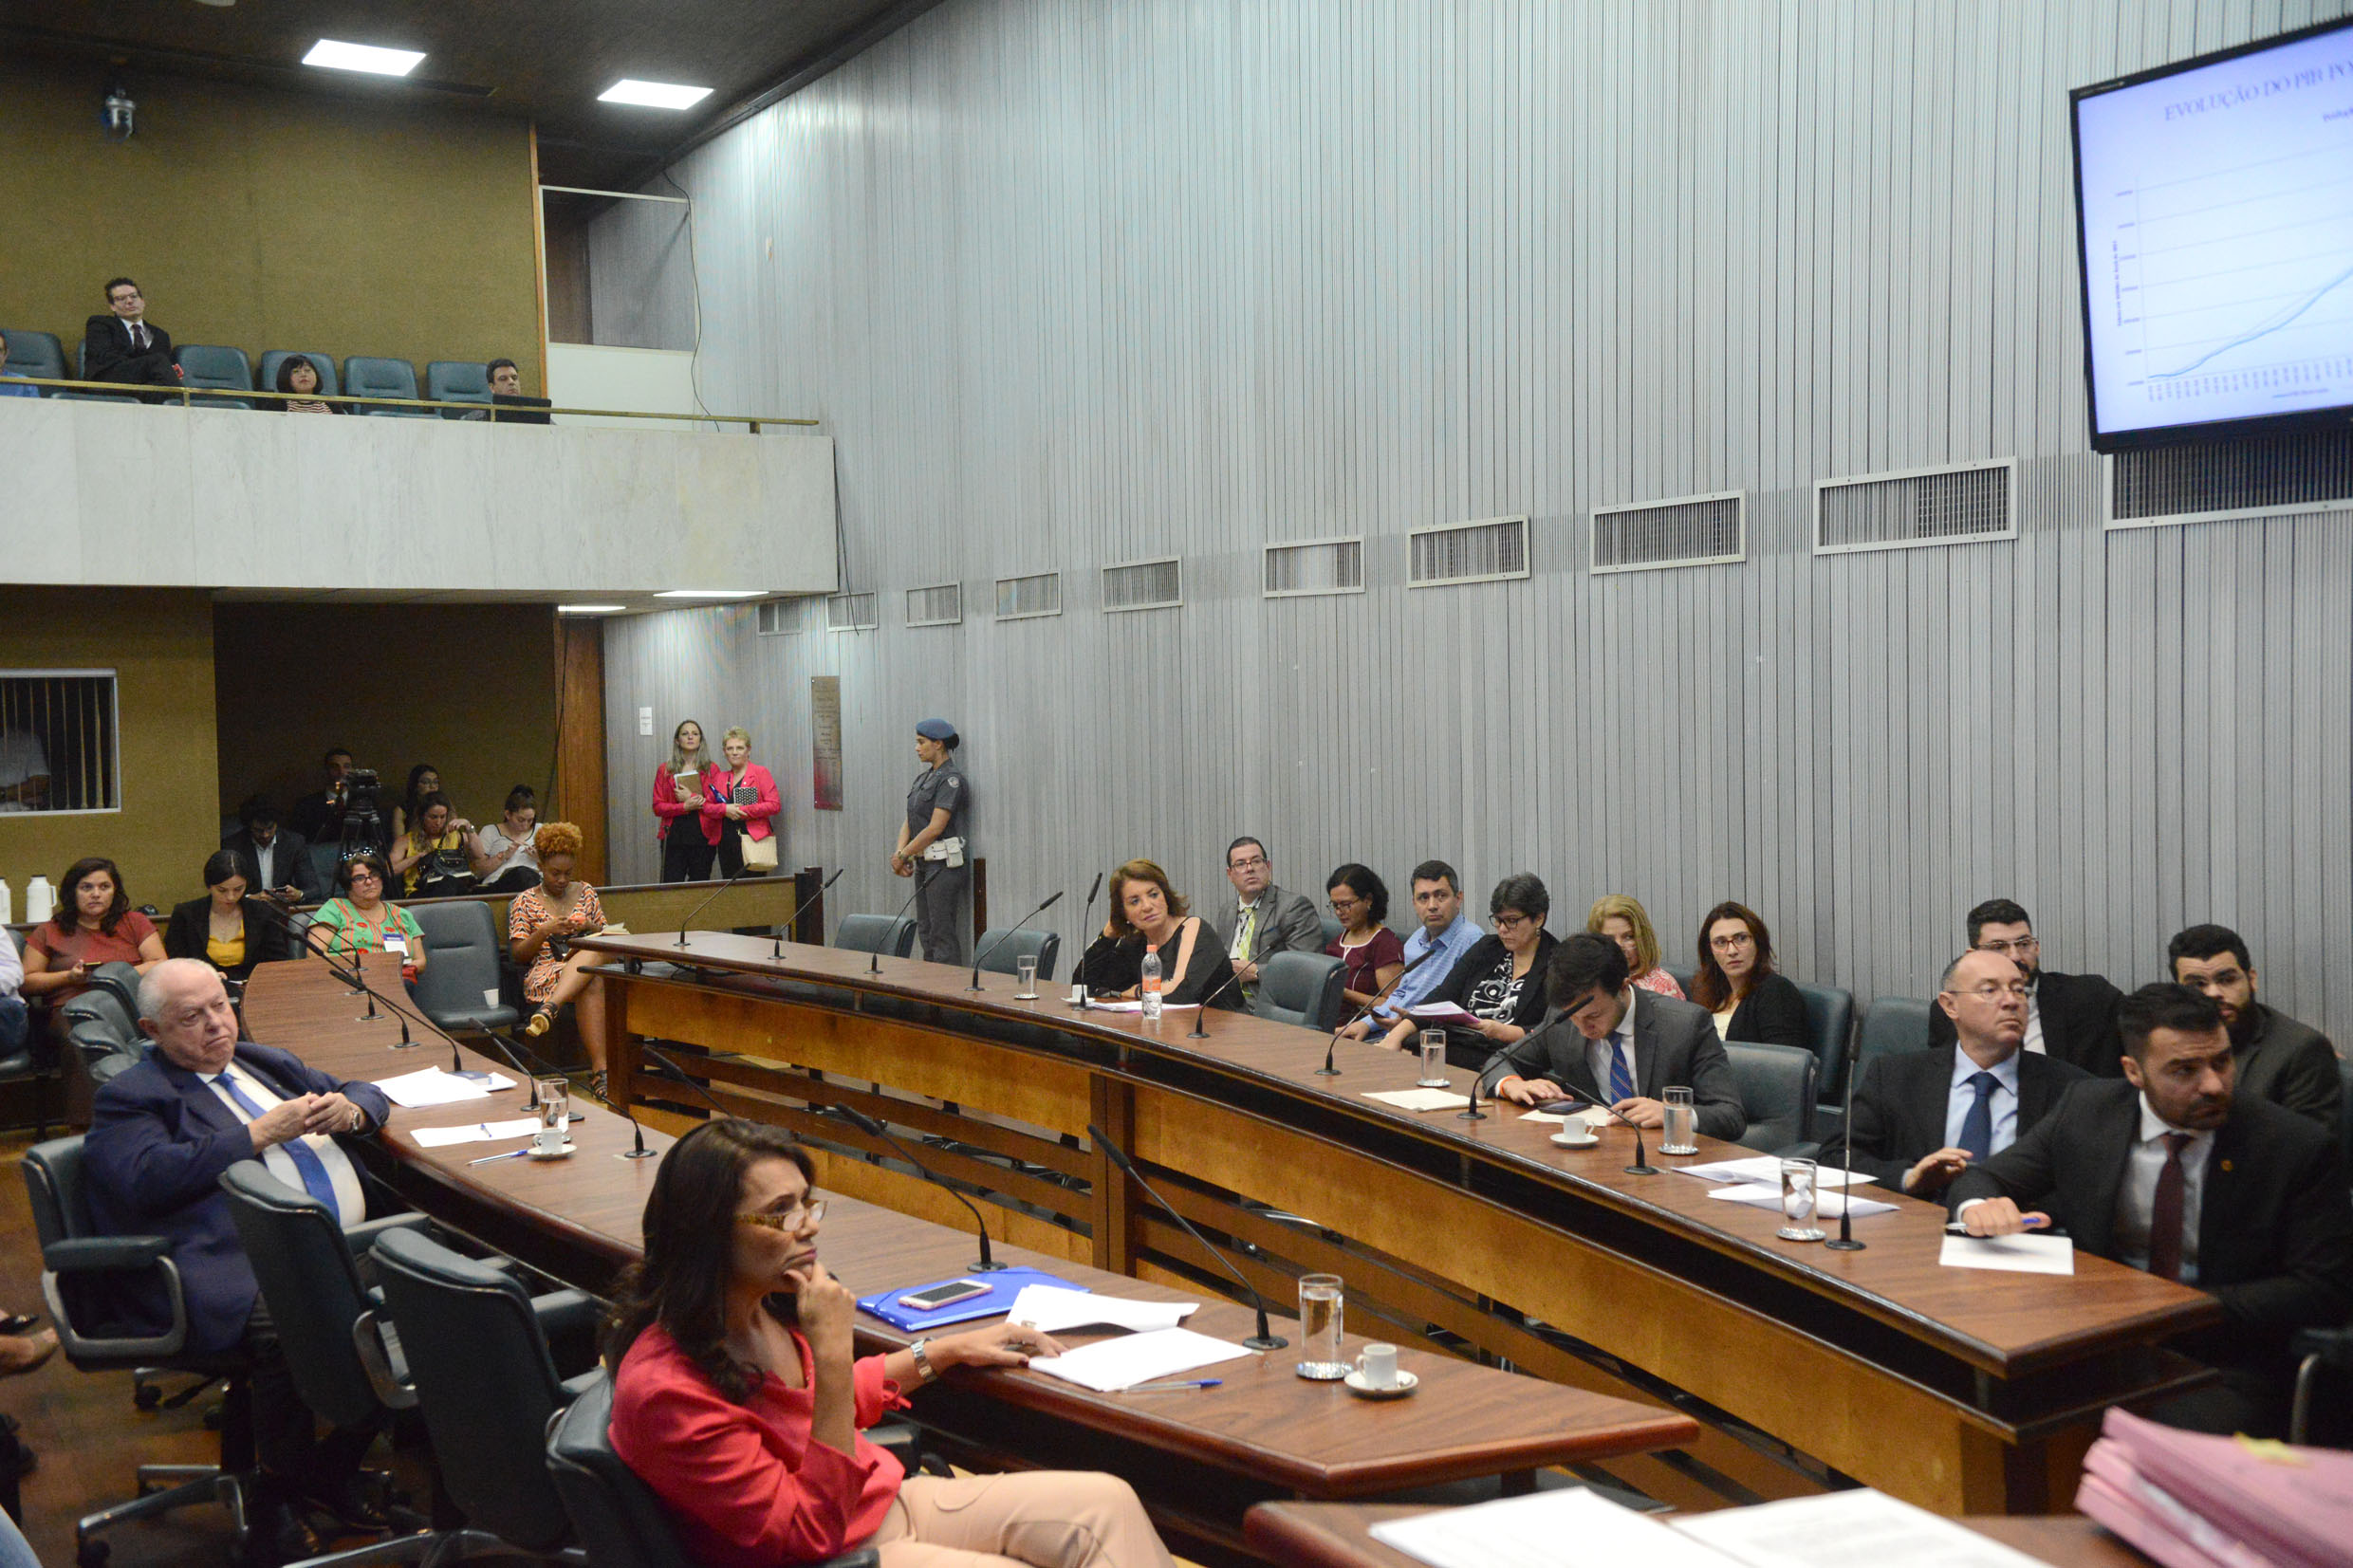 Parlamentares na CPI<a style='float:right' href='https://www3.al.sp.gov.br/repositorio/noticia/N-10-2019/fg240931.jpg' target=_blank><img src='/_img/material-file-download-white.png' width='14px' alt='Clique para baixar a imagem'></a>